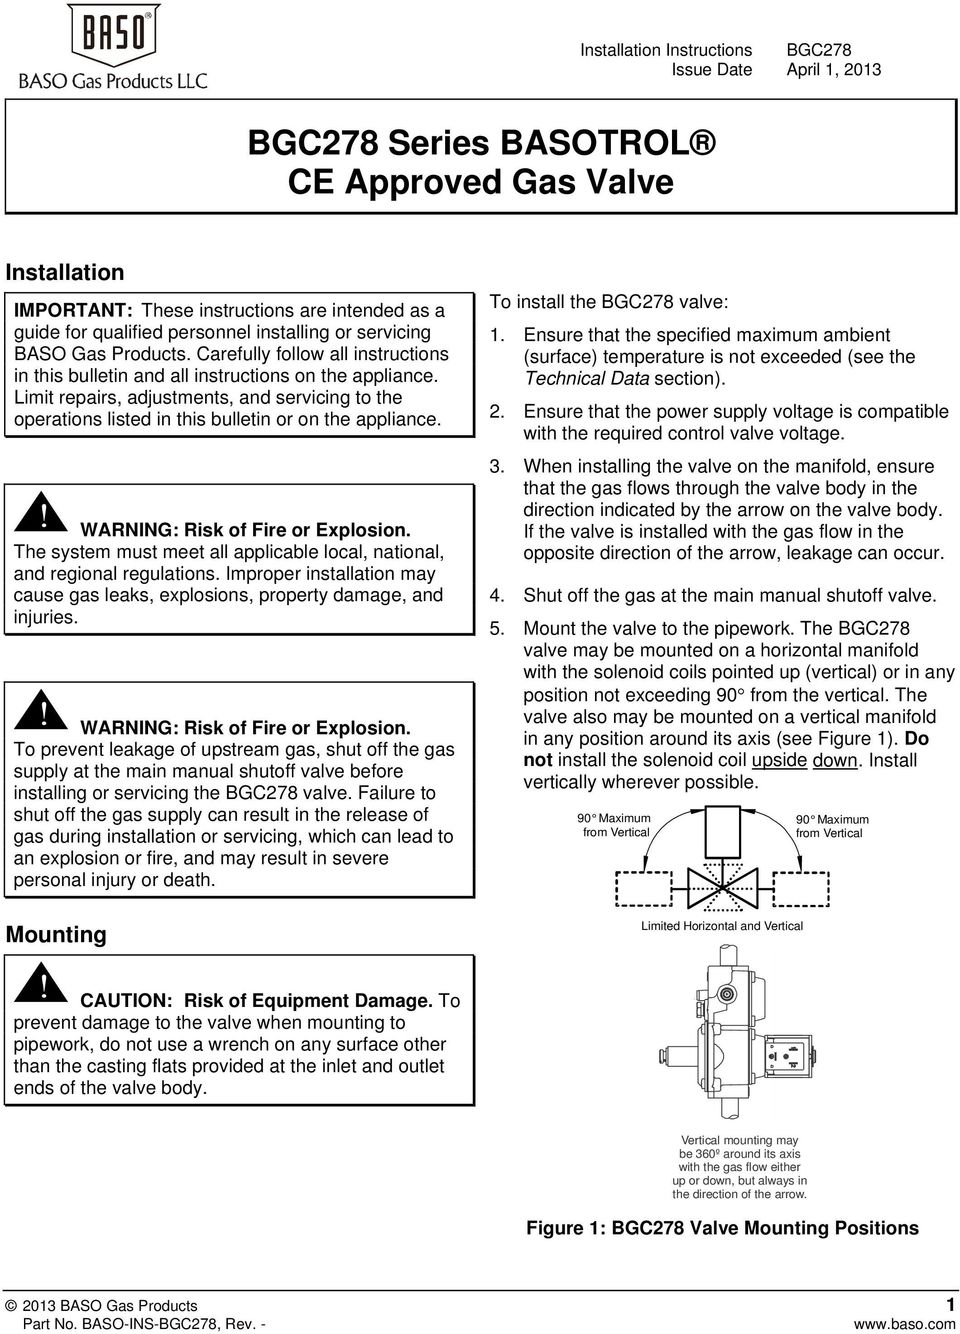 Limit repairs, adjustments, and servicing to the operations listed in this bulletin or on the appliance. The system must meet all applicable local, national, and regional regulations.